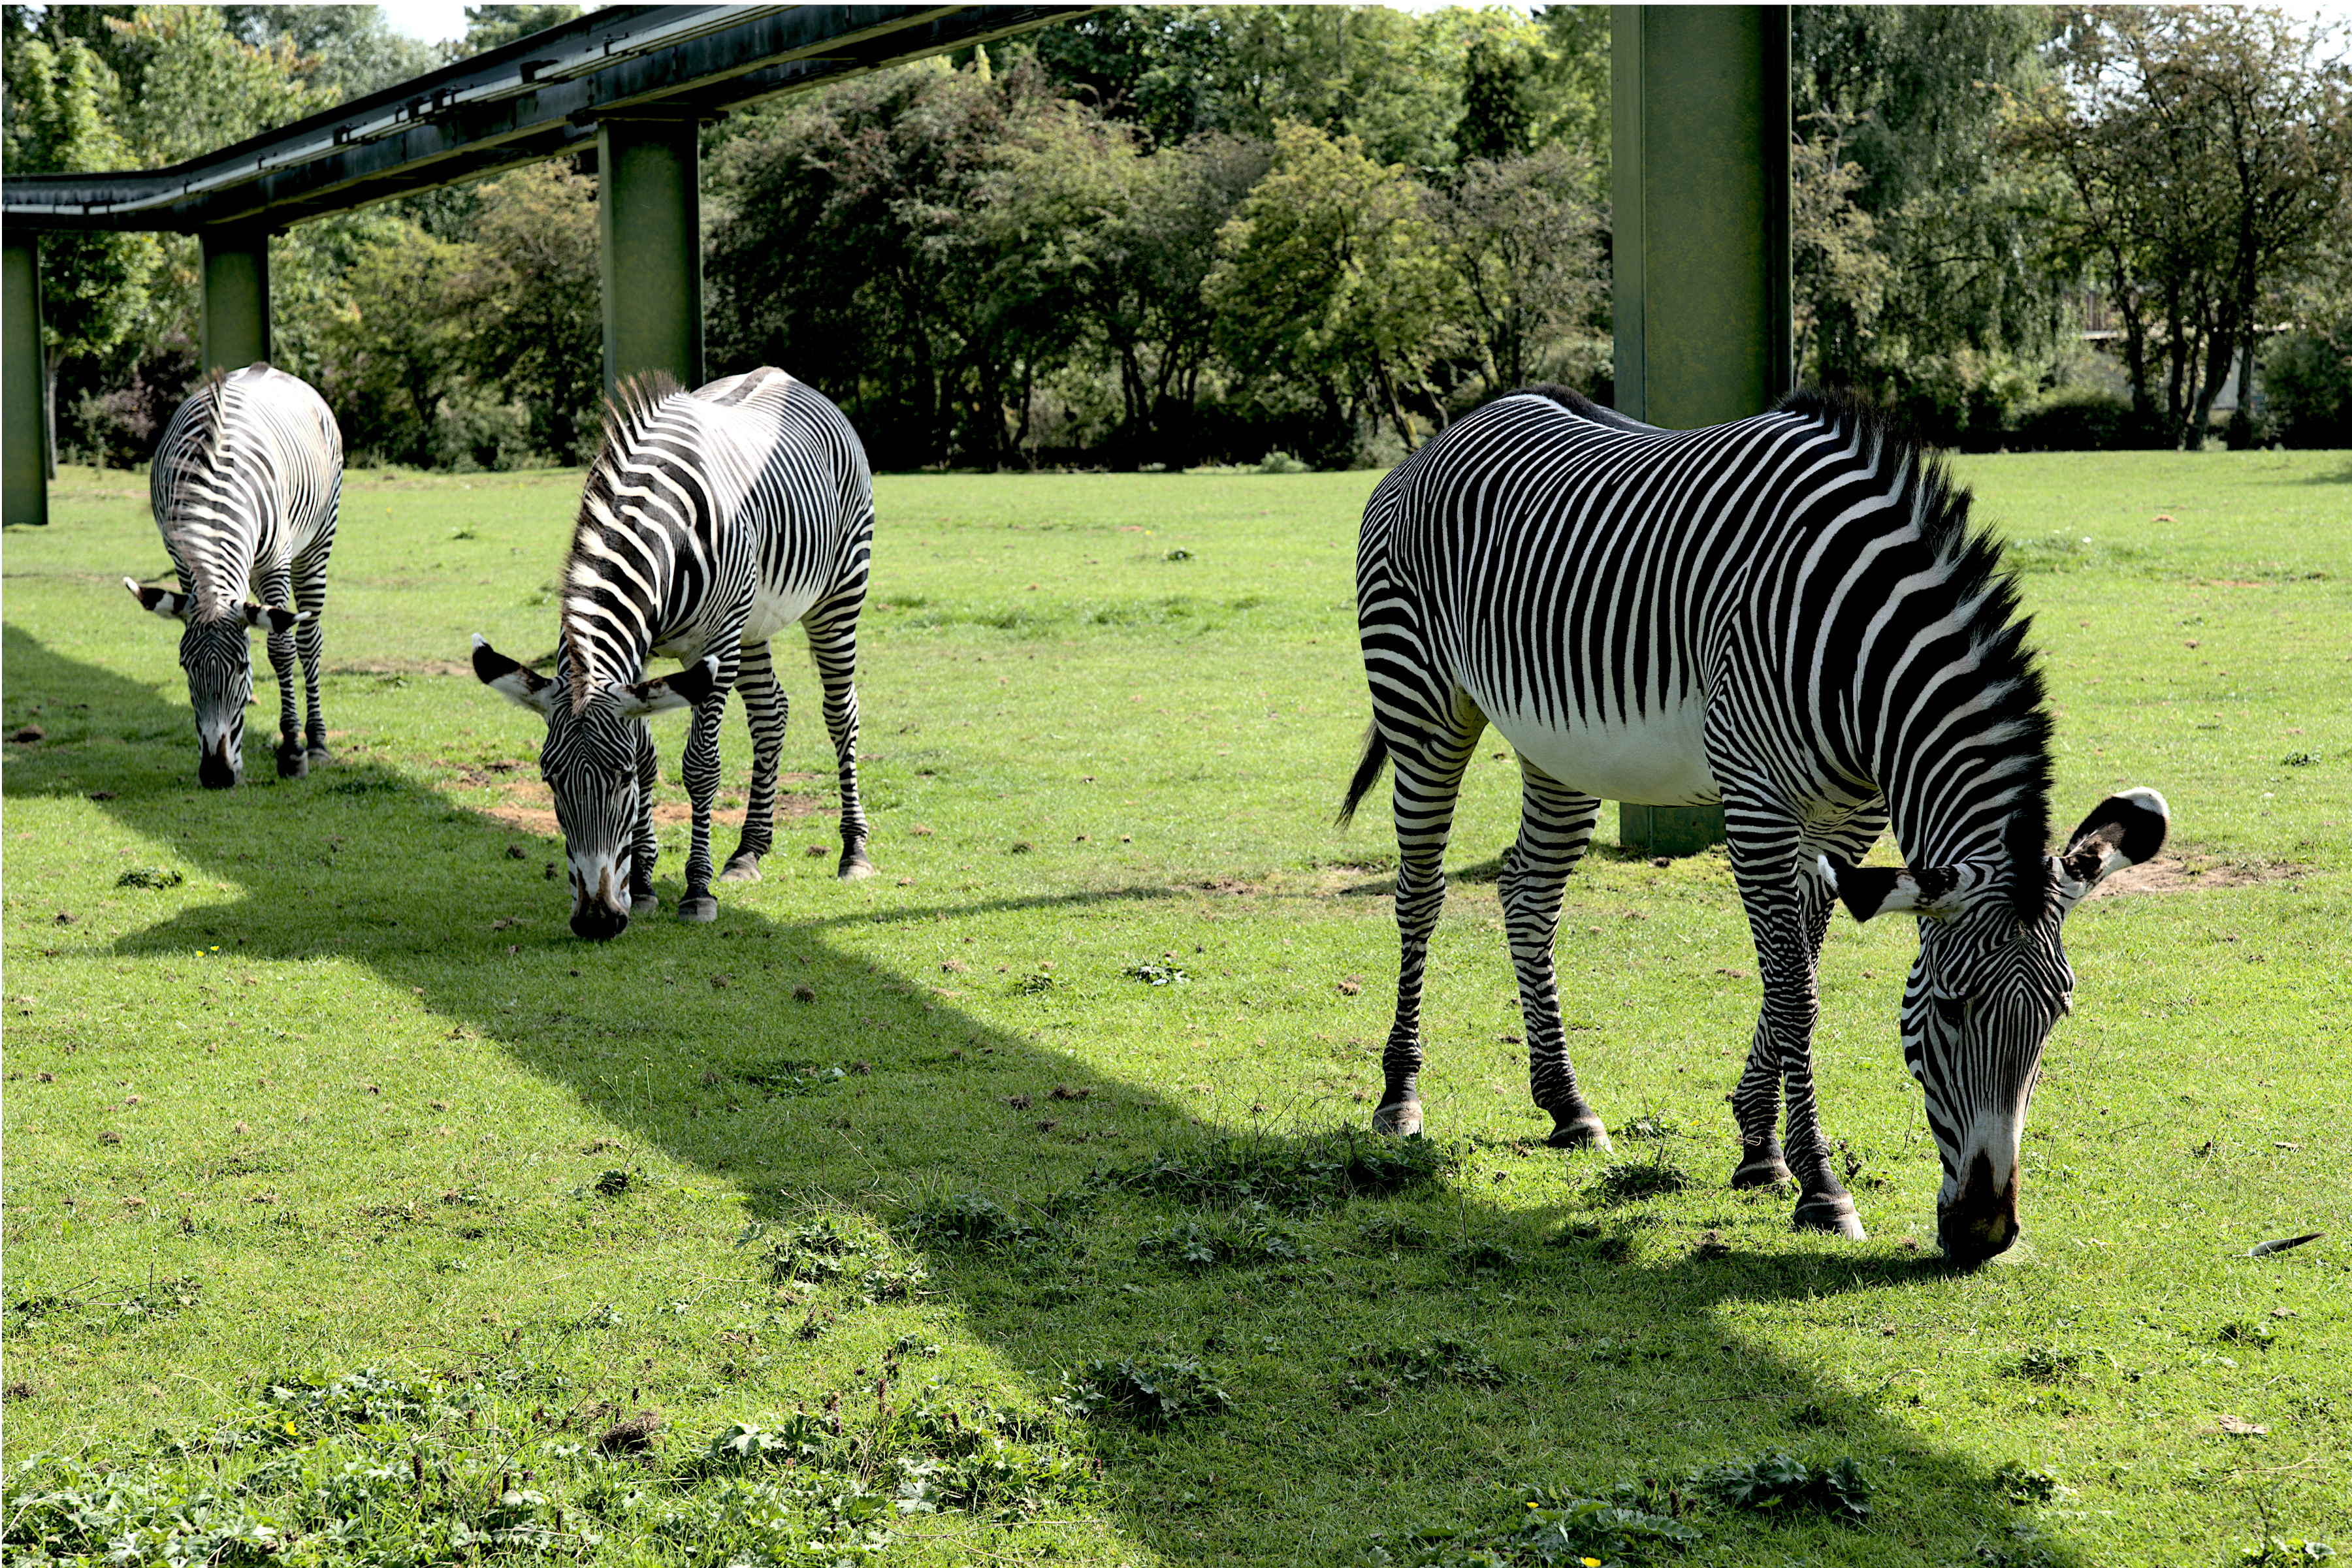 Three Zebras of Chester Zoo Low Res_1001314.jpg